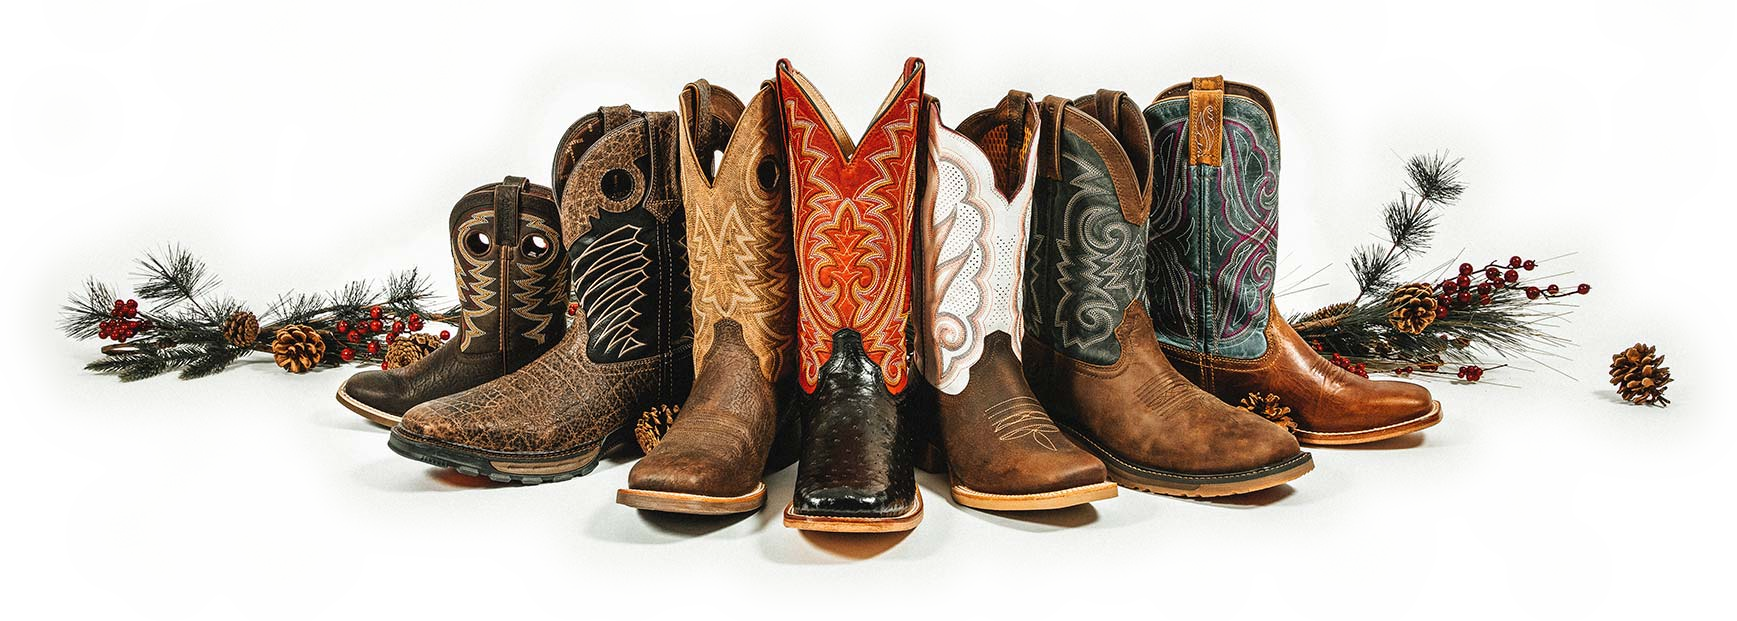 Western boots that would be perfect to give as gifts